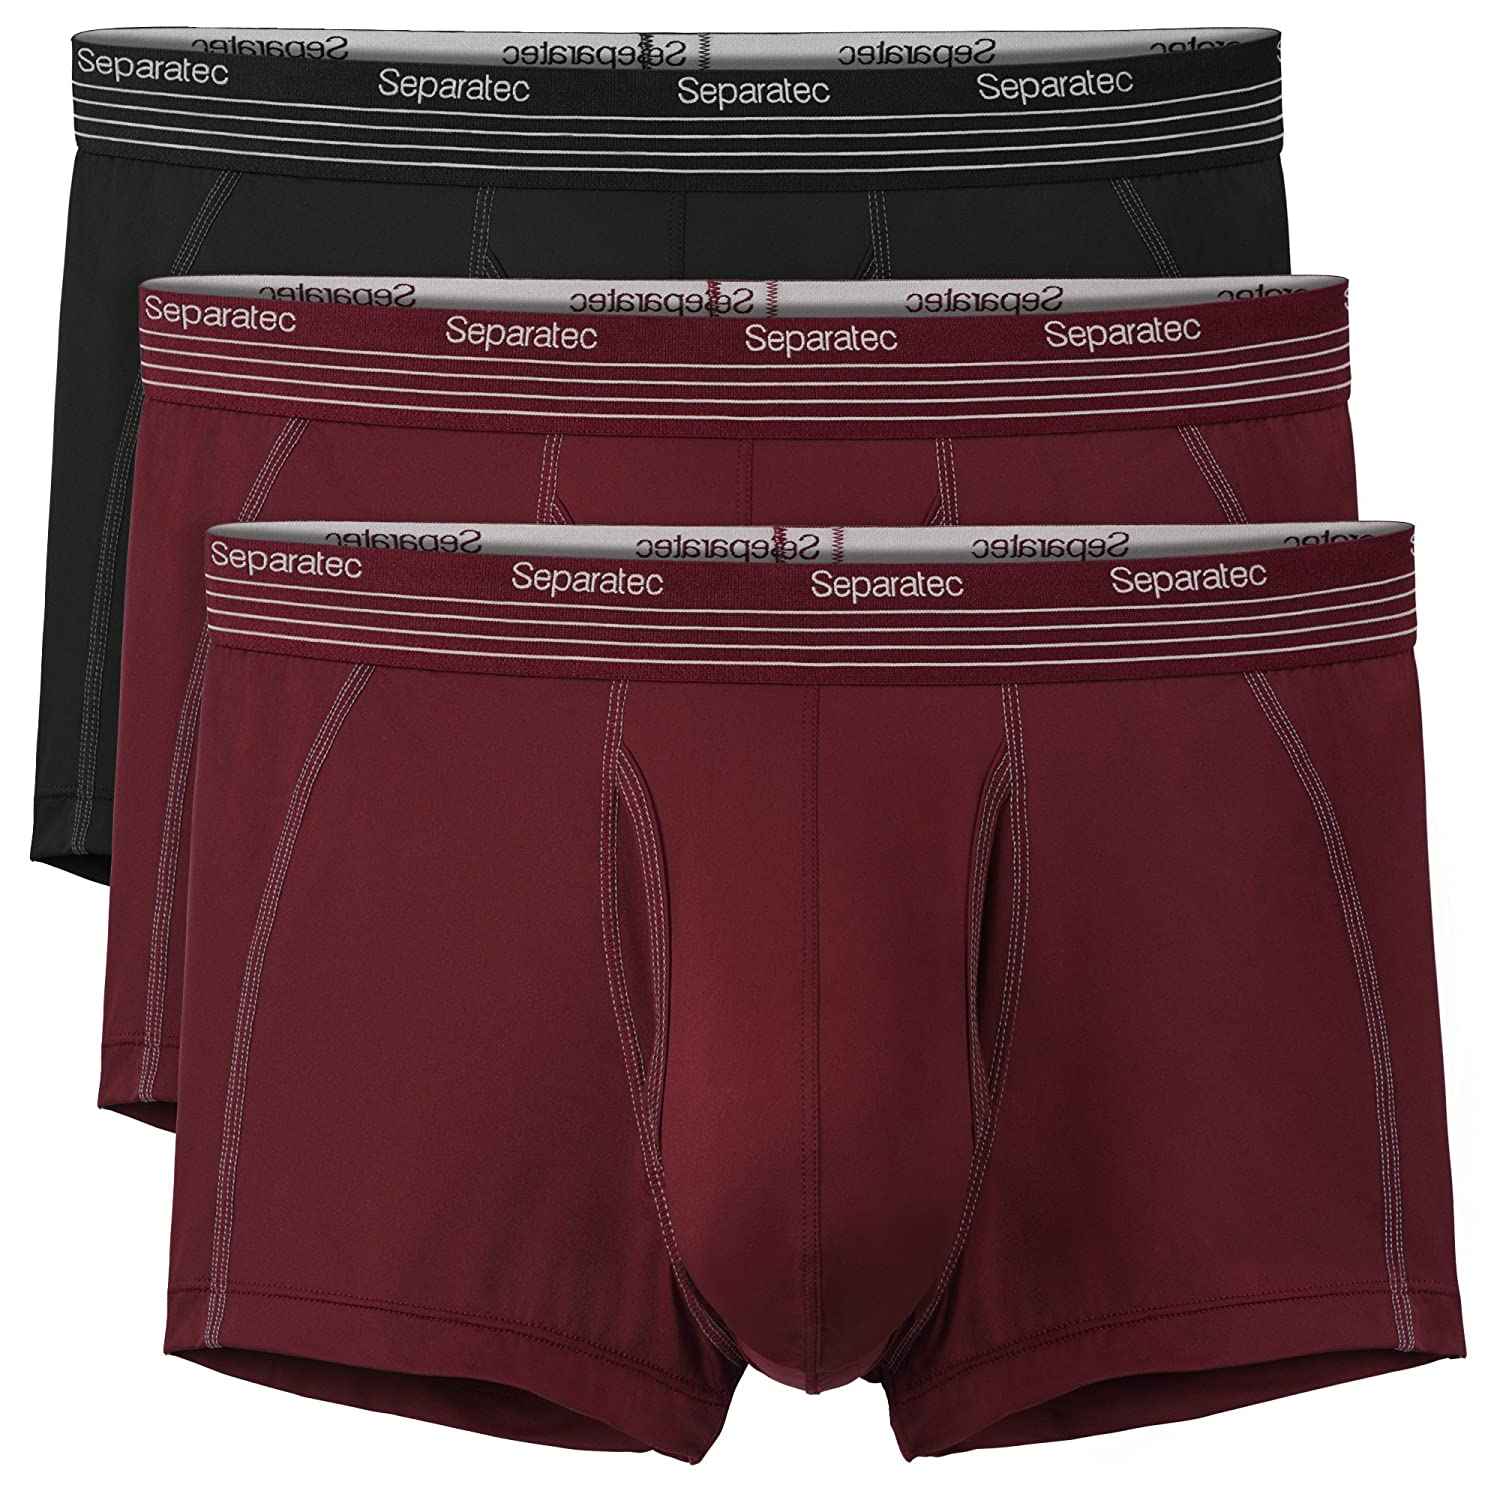 Separatec 3 Pack Mens Boxer Shorts Fast Dry Polyamide Trunks with Separate Pouches and Fly, Fitted Boxers Briefs